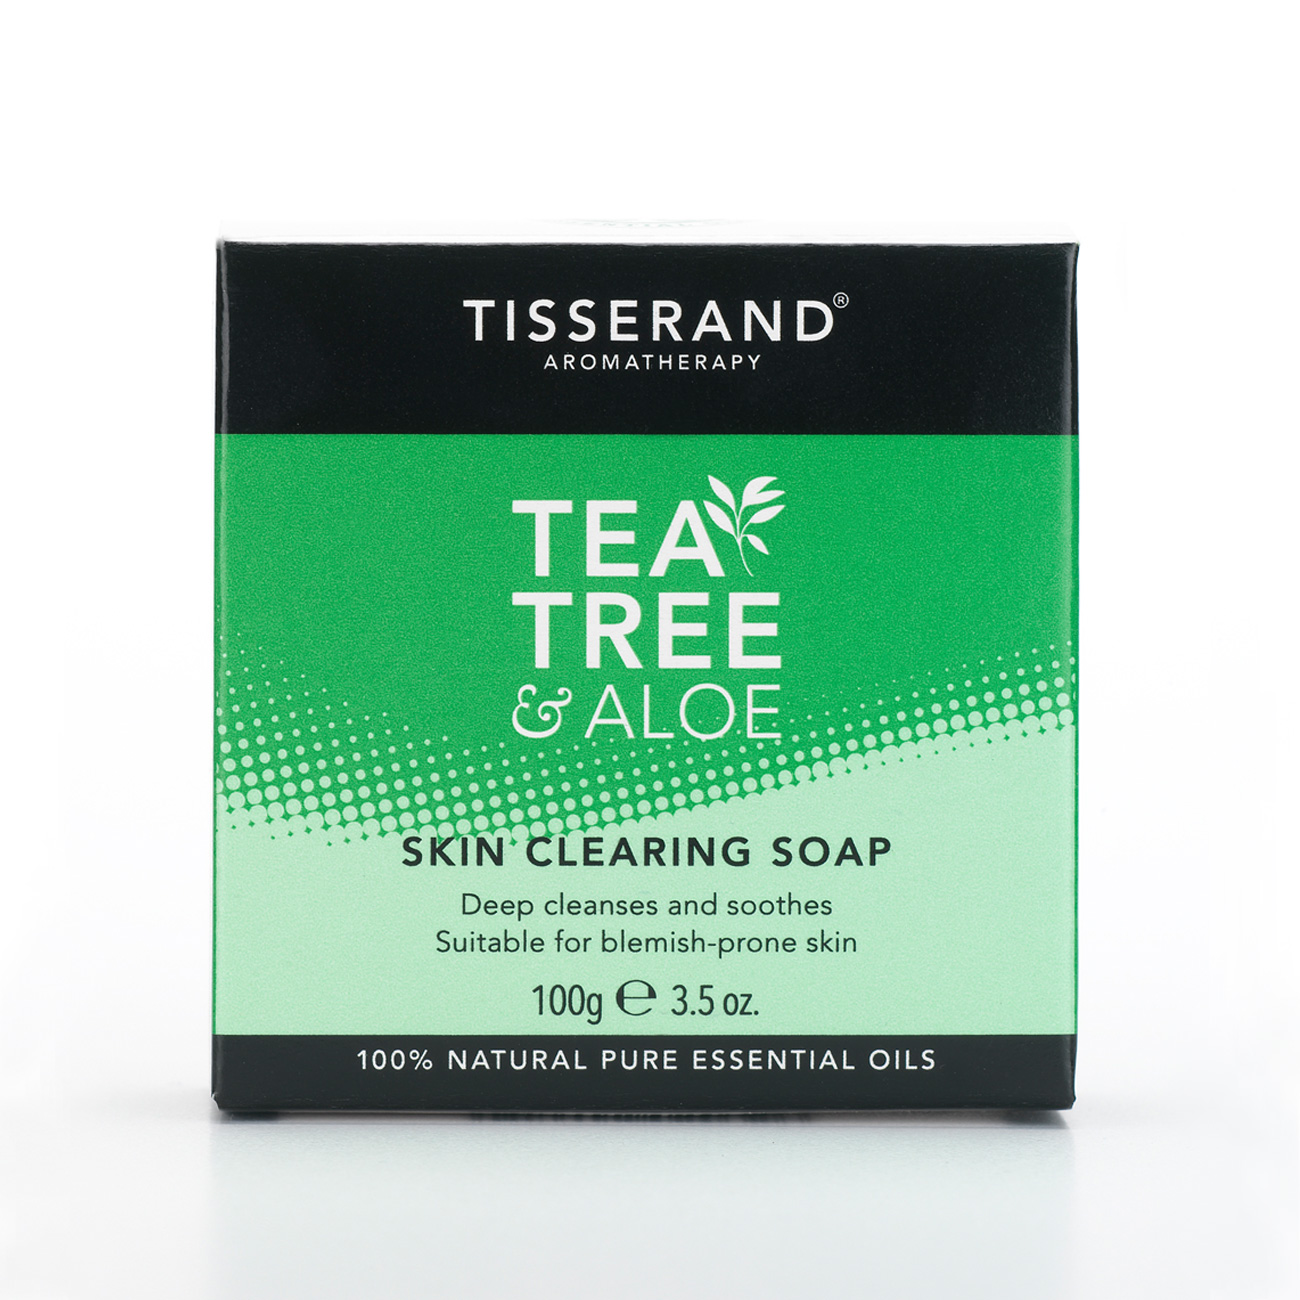 Tisserand-Aromatherapy-Tea-Tree-&-Aloe-Soap_1300x1300_web